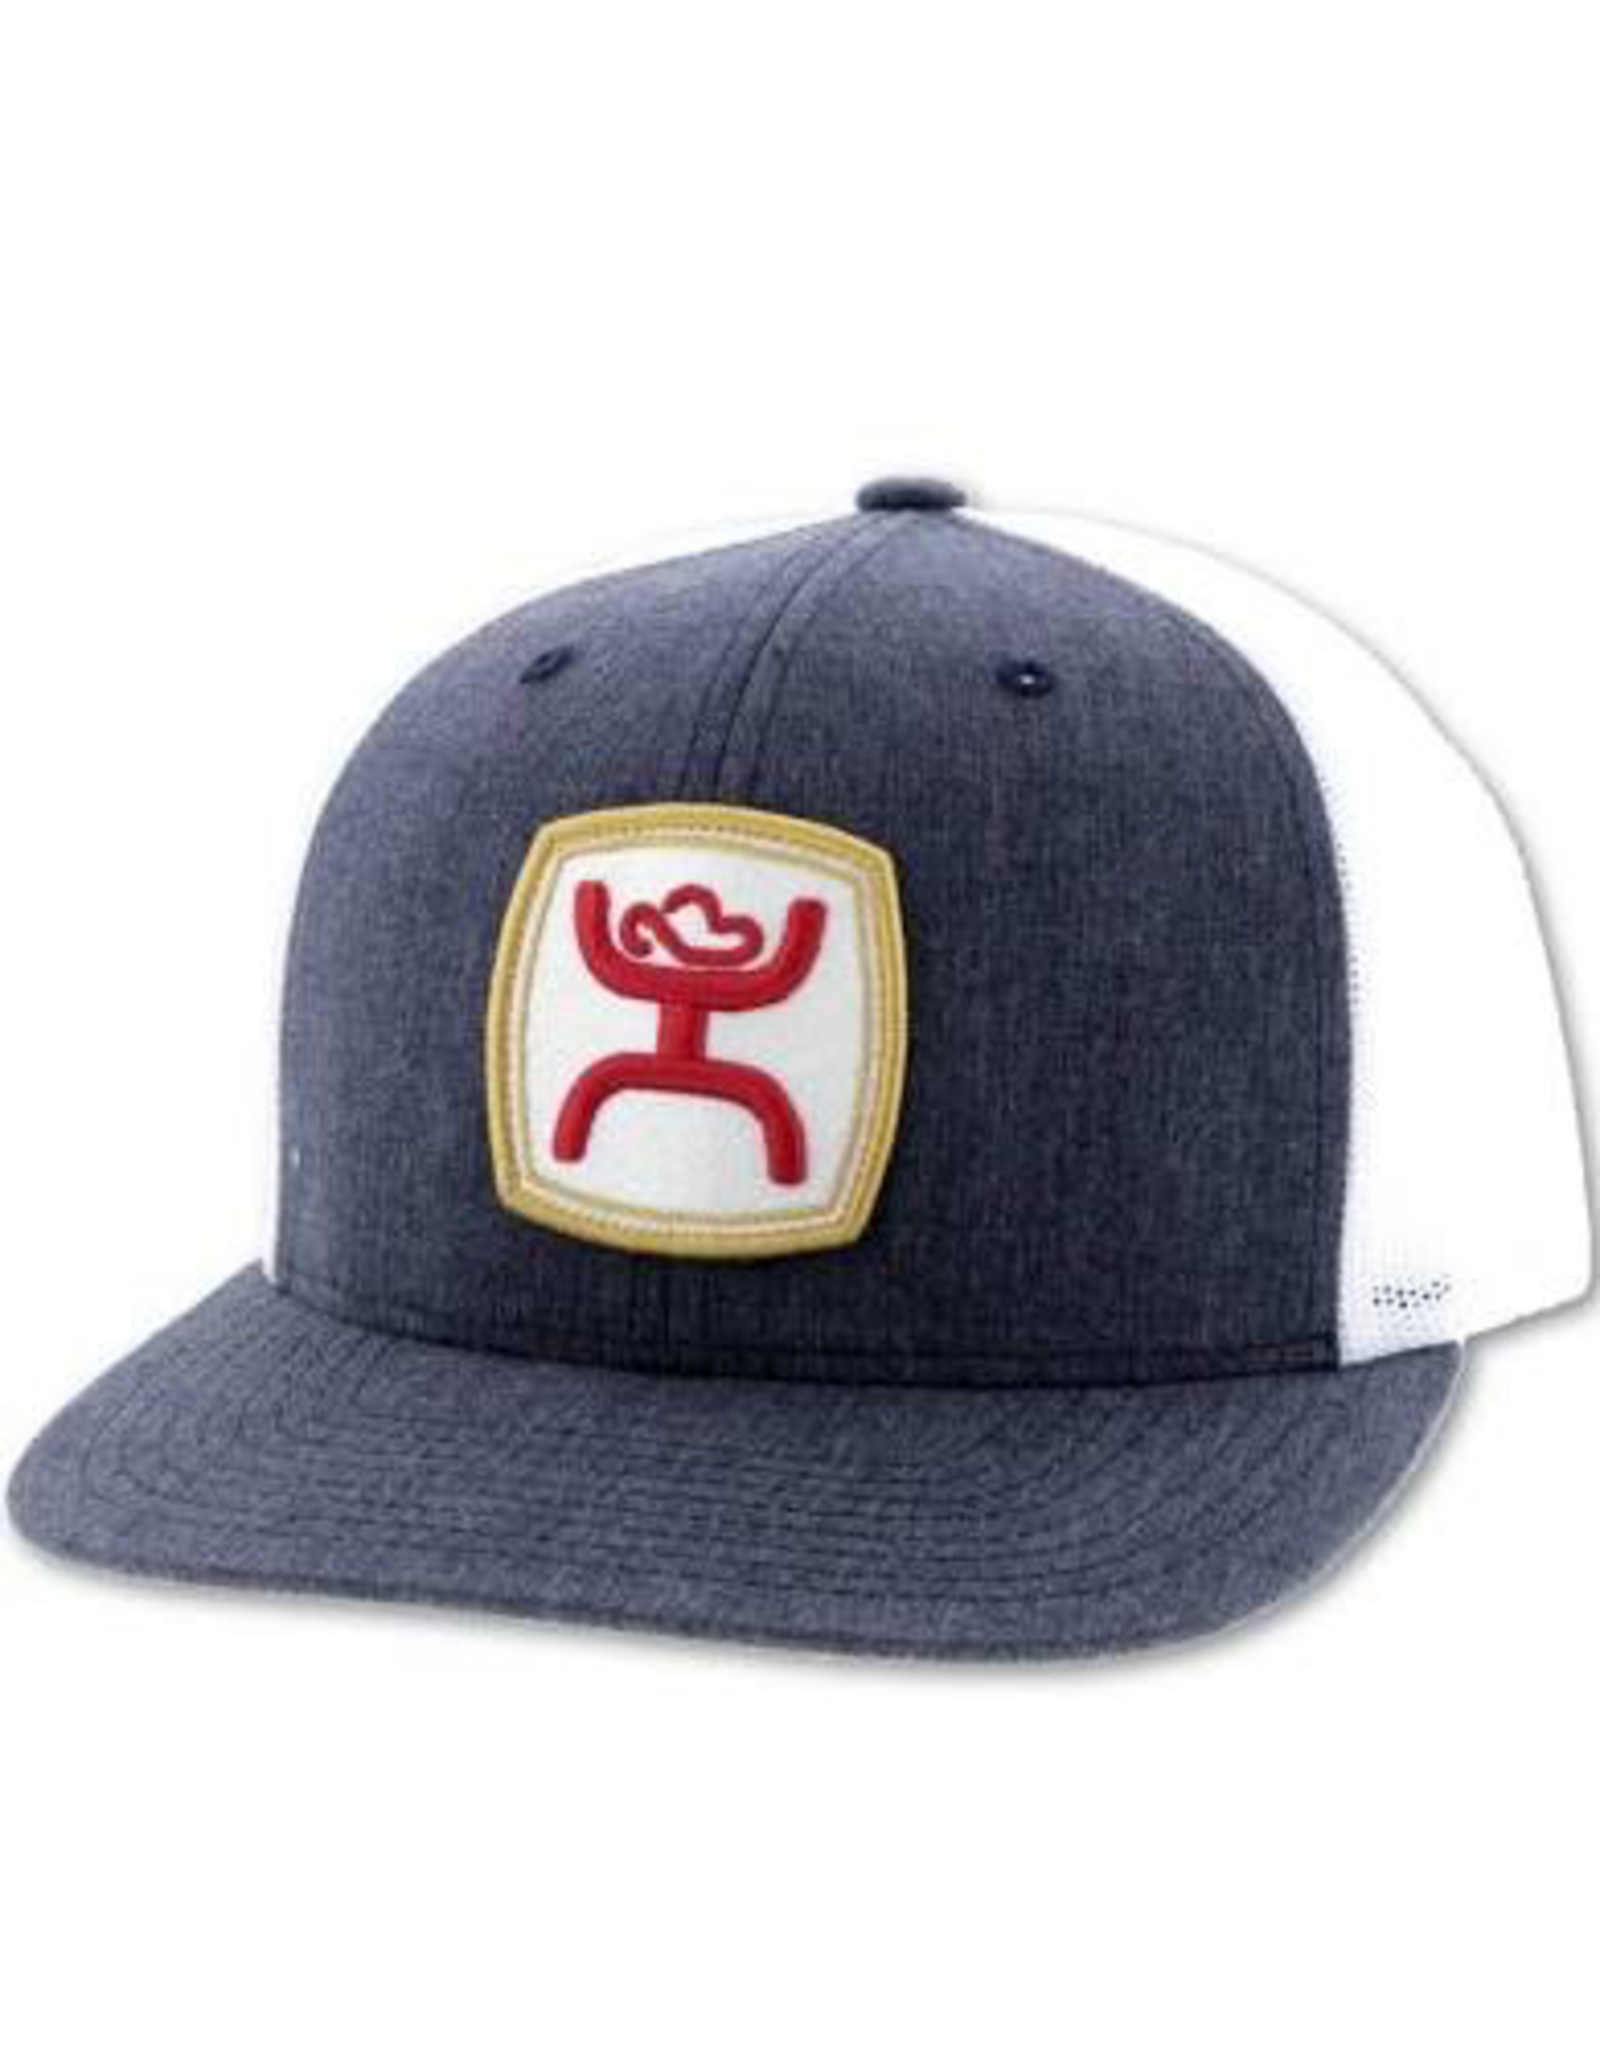 Hats HOOEY Red and White Patch